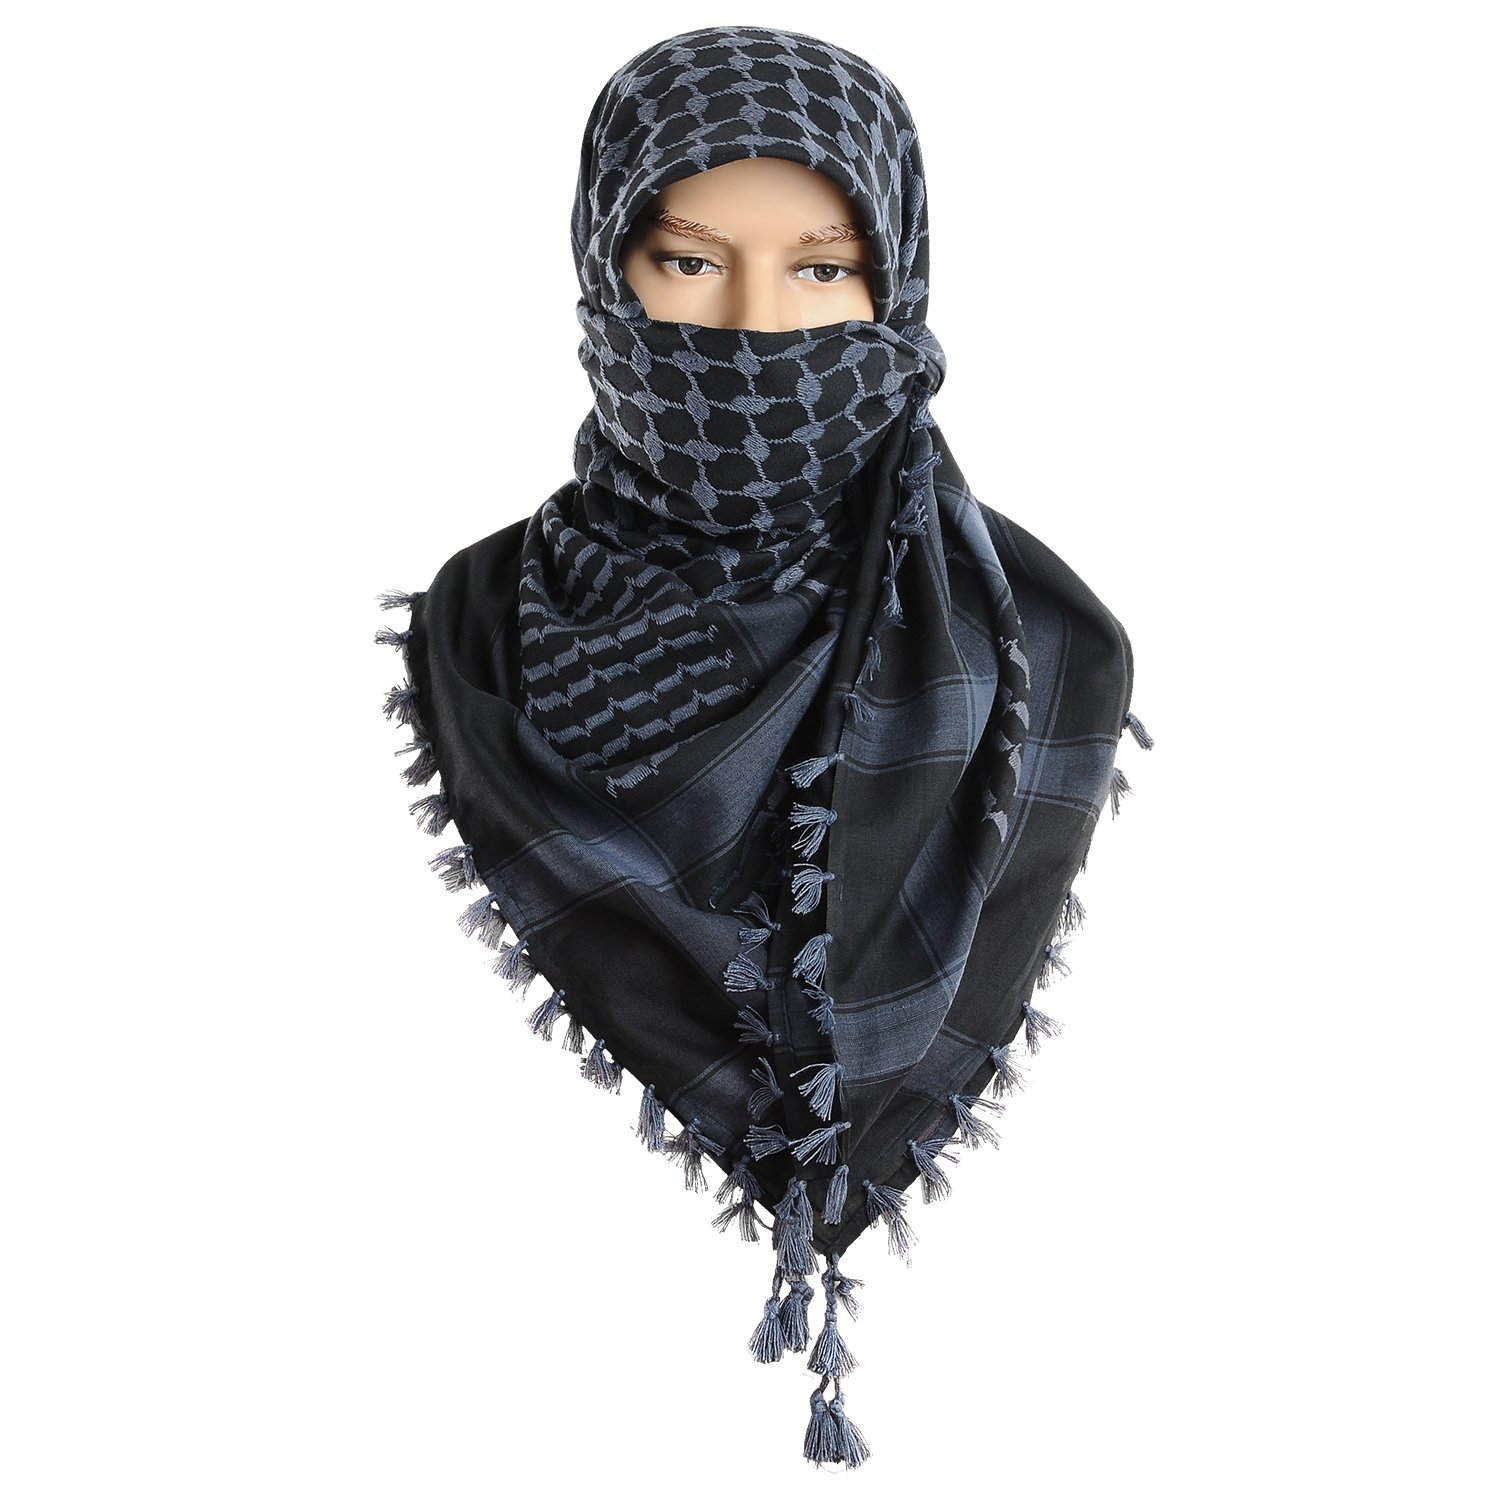 Micoop Large Size Premium Shemagh Scarf Arab Military Tactical Desert Scarf Wrap(48 by 48 inches) (Black Dark Blue)